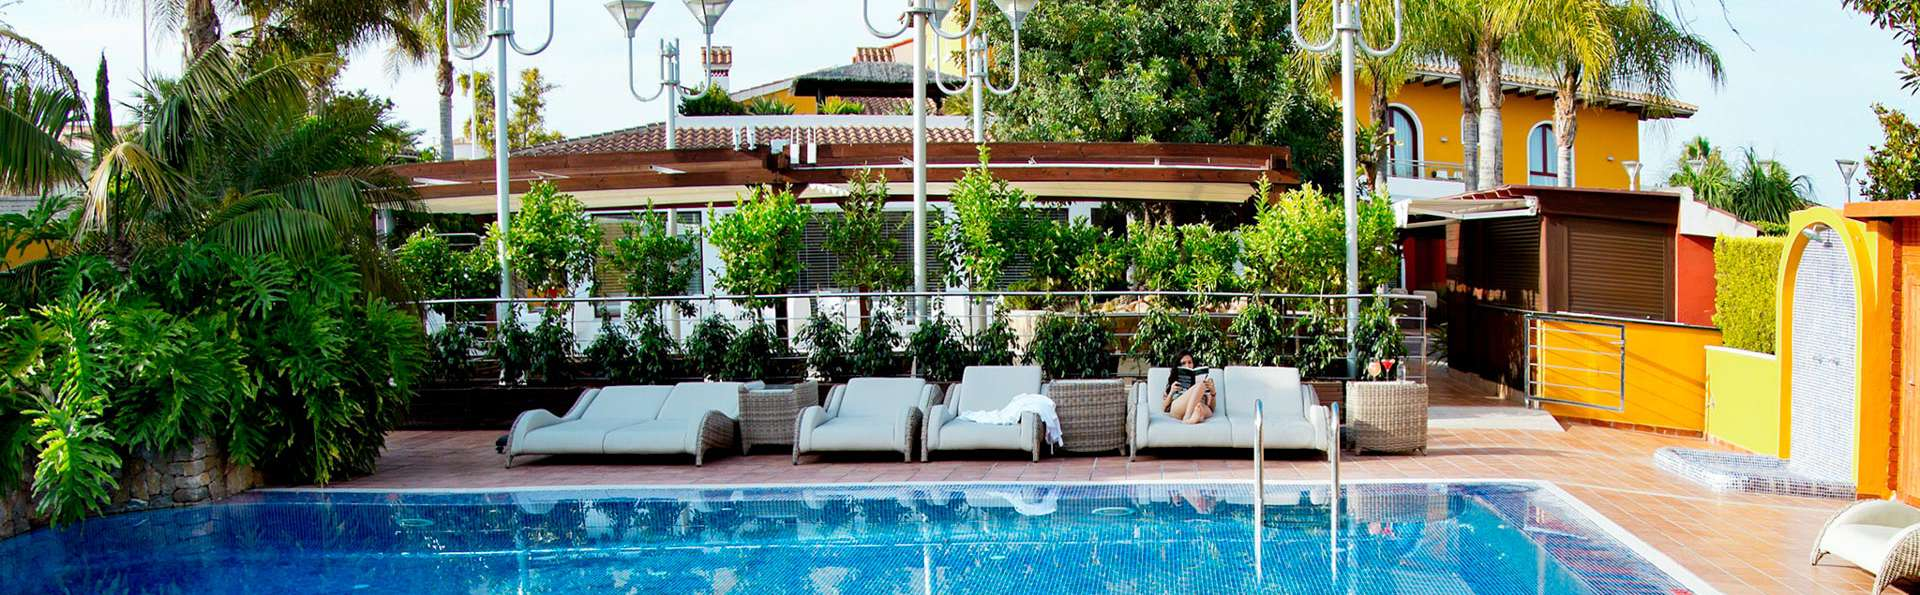 The Cook Book Gastro Boutique Hotel & Spa - EDIT_POOL_07.jpg